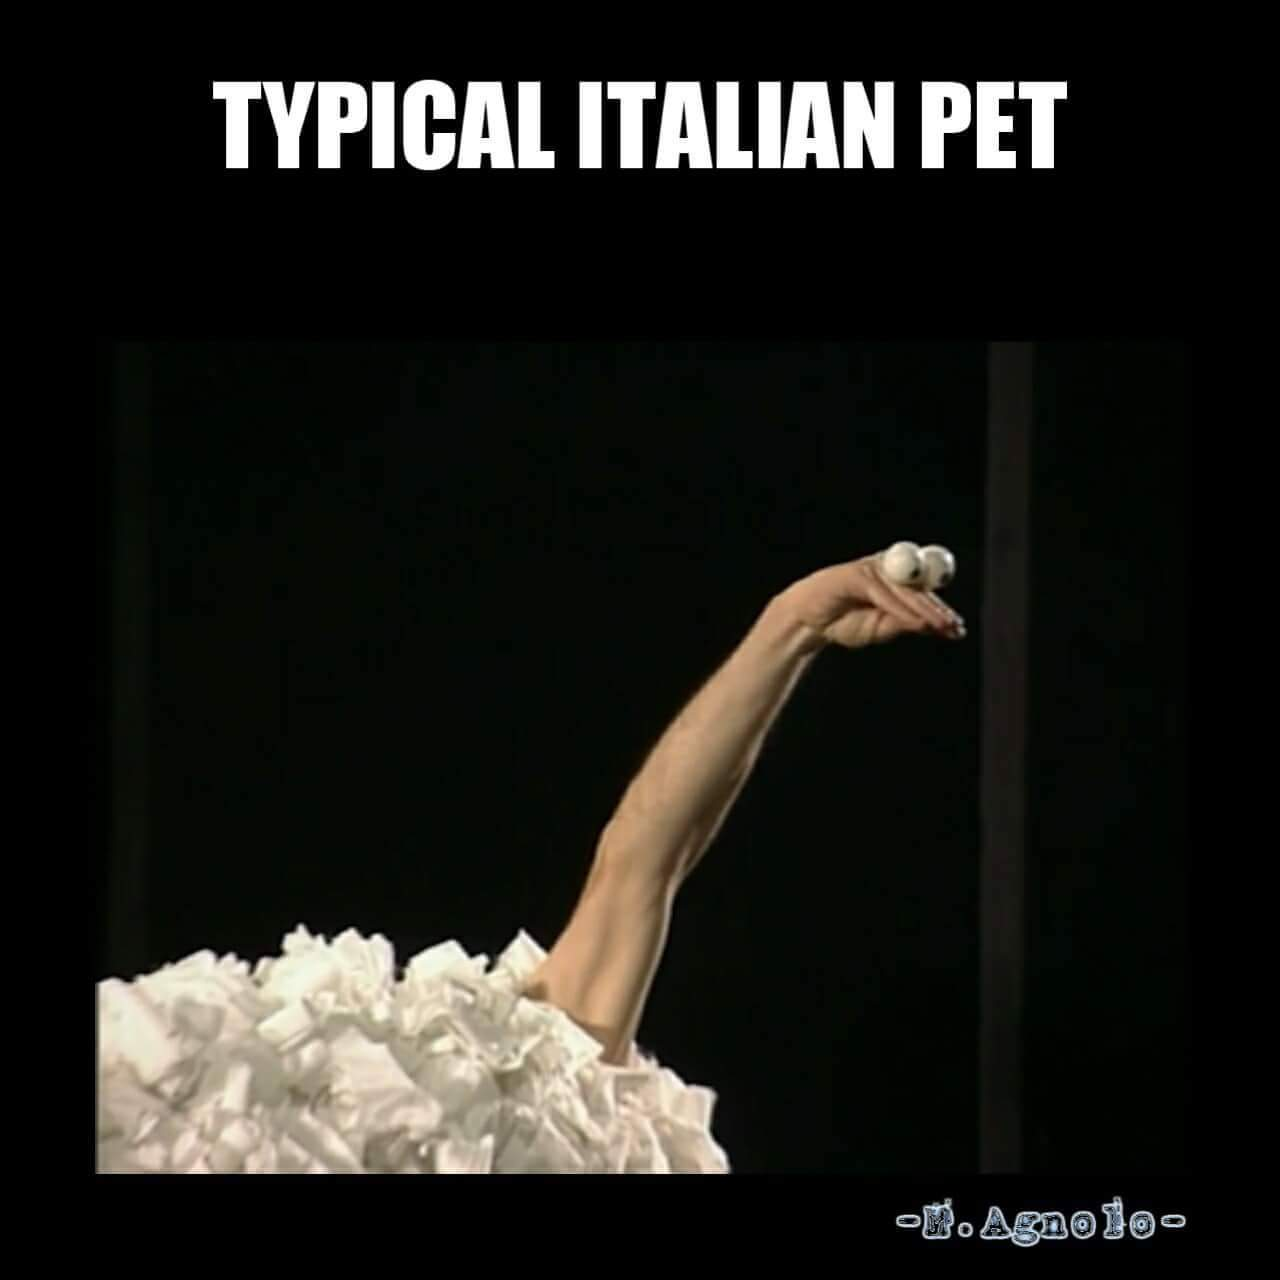 23 Italian Memes That Are Scary Accurate - Gallery | eBaum ...